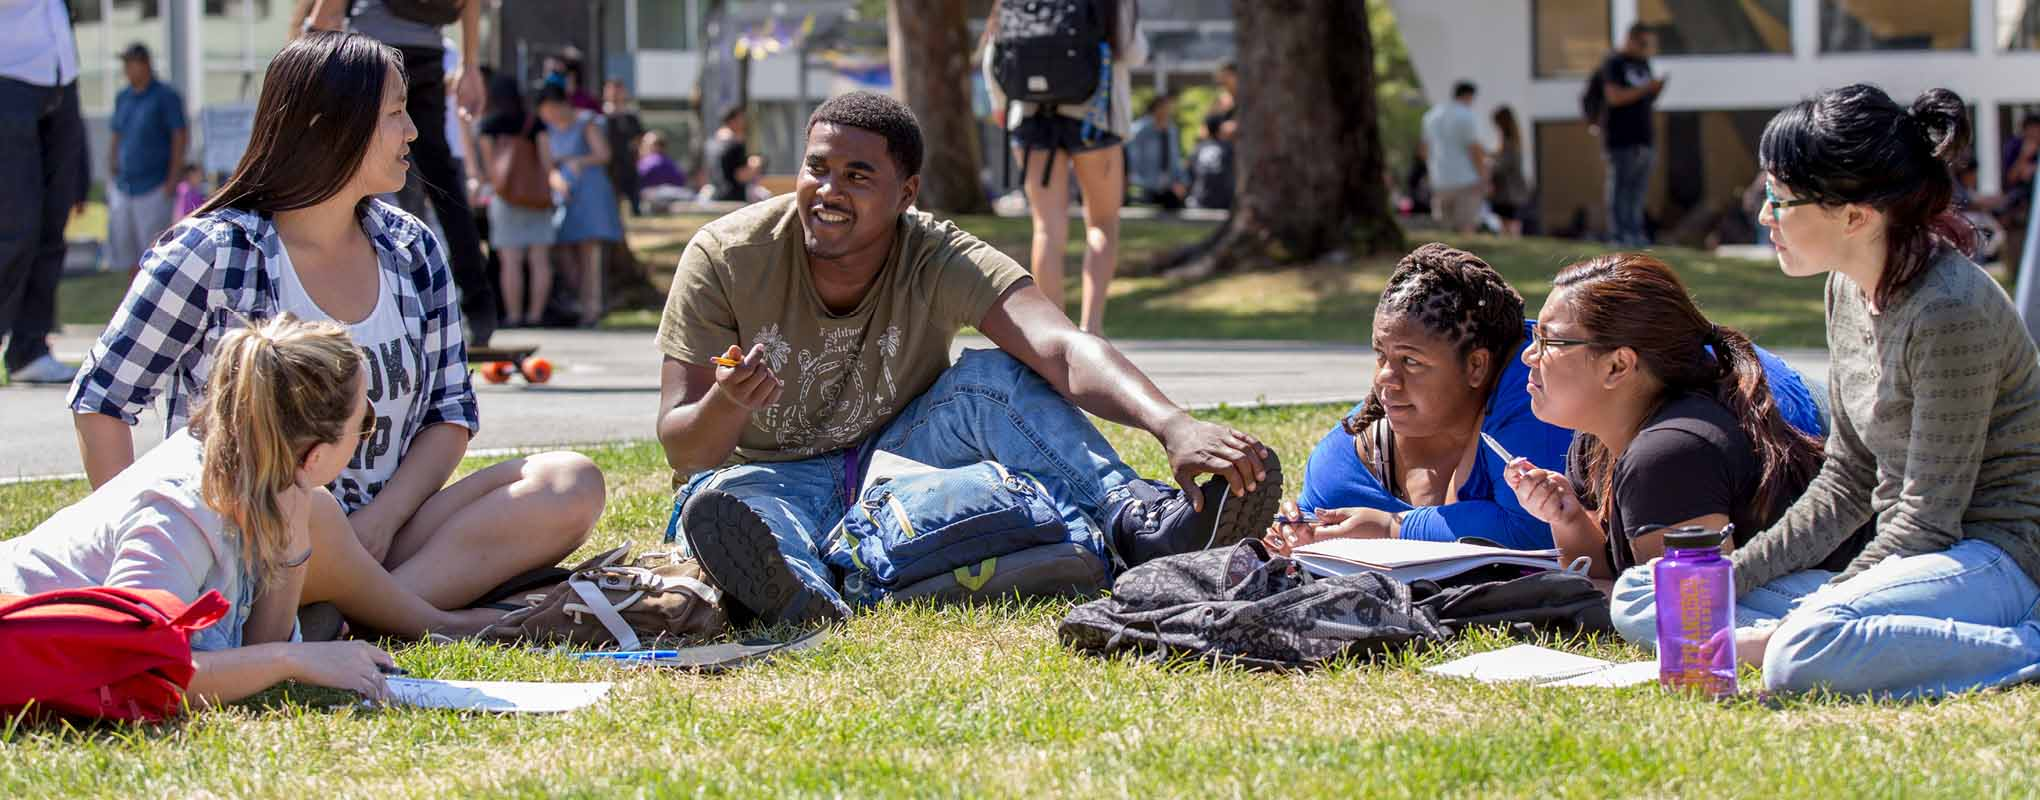 SFSU students exchanging ideas